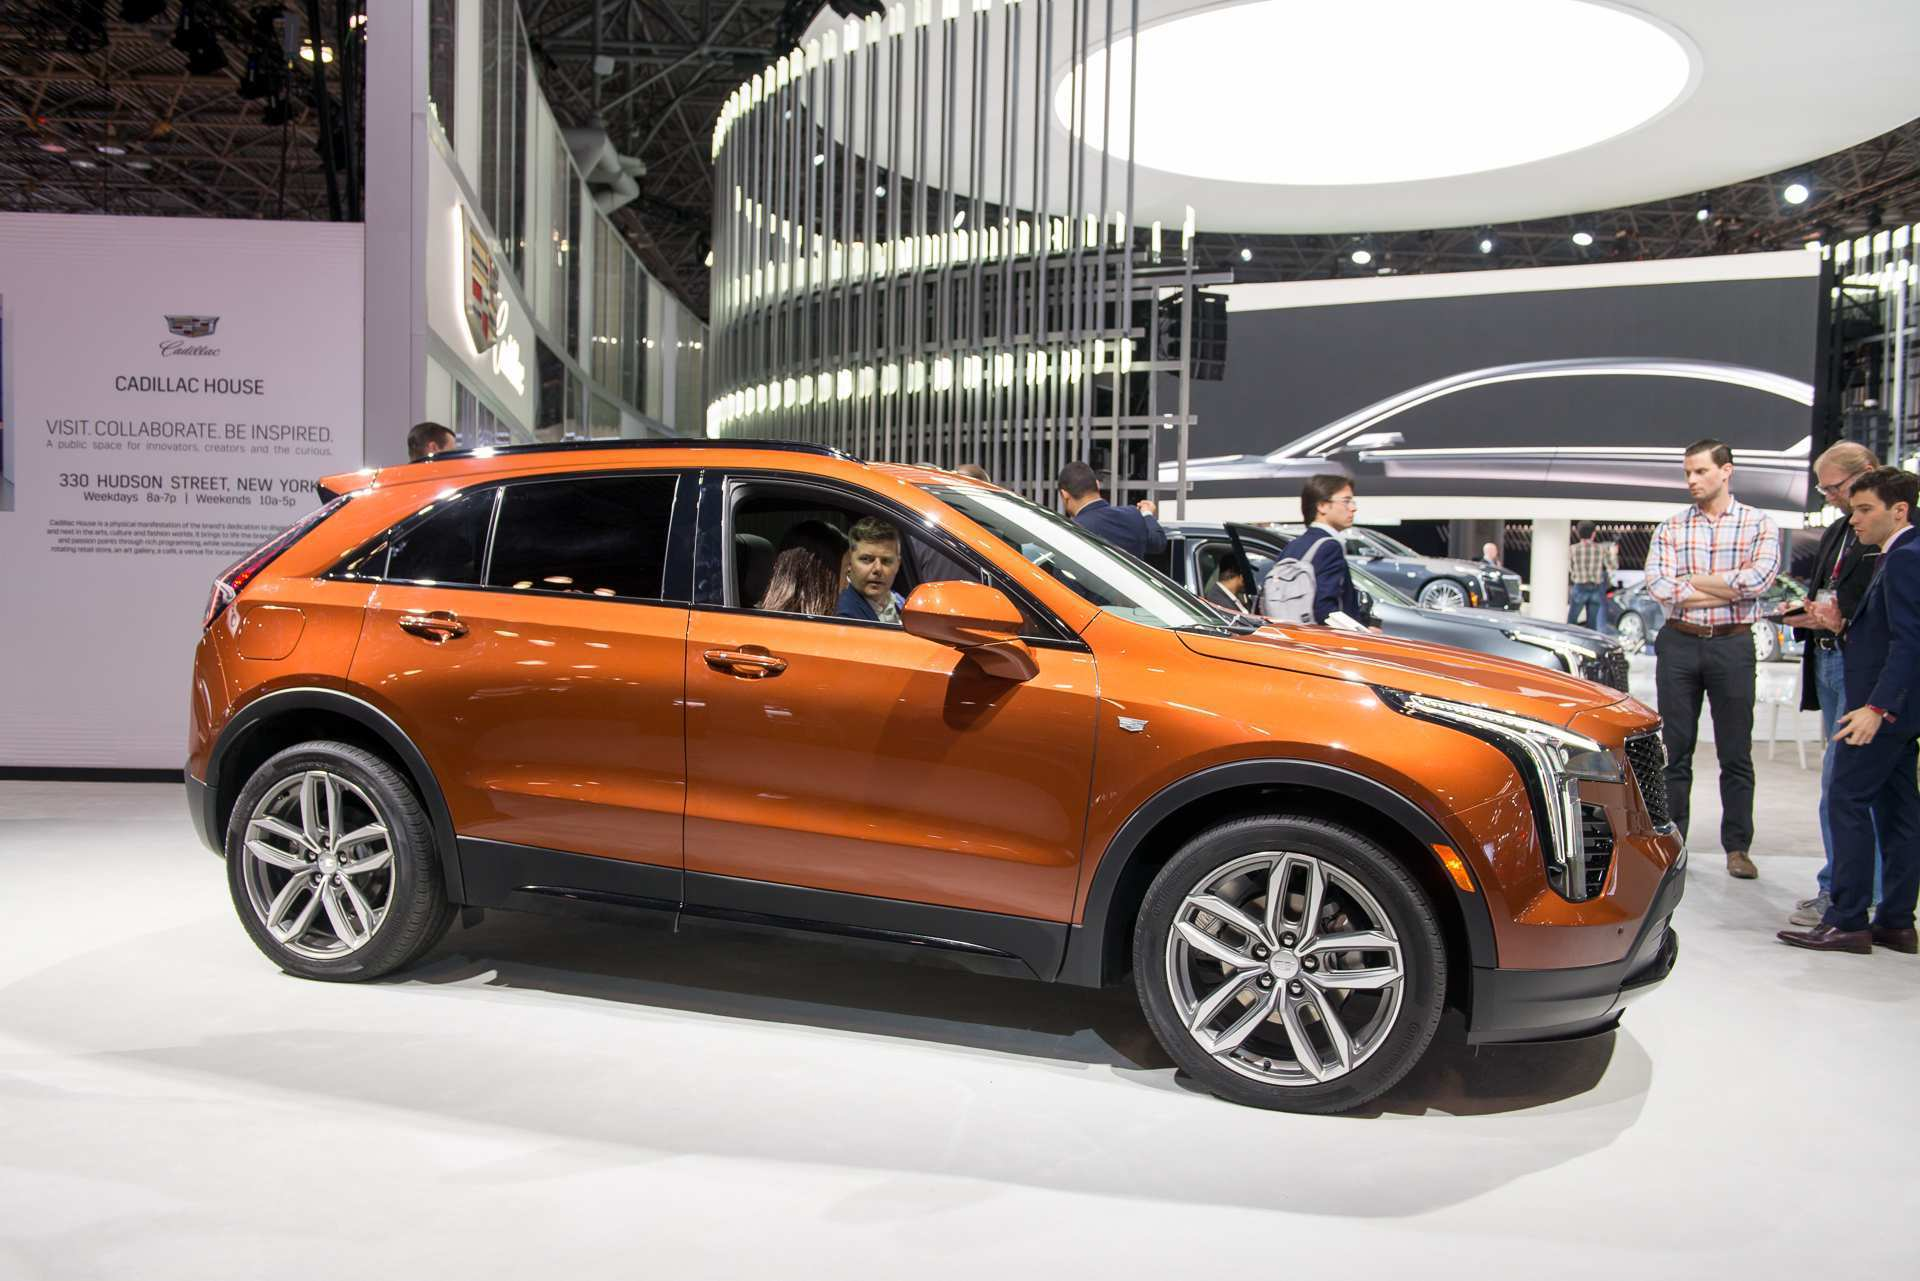 93 Concept of New Cadillac 2019 Xt4 Price Exterior and Interior for New Cadillac 2019 Xt4 Price